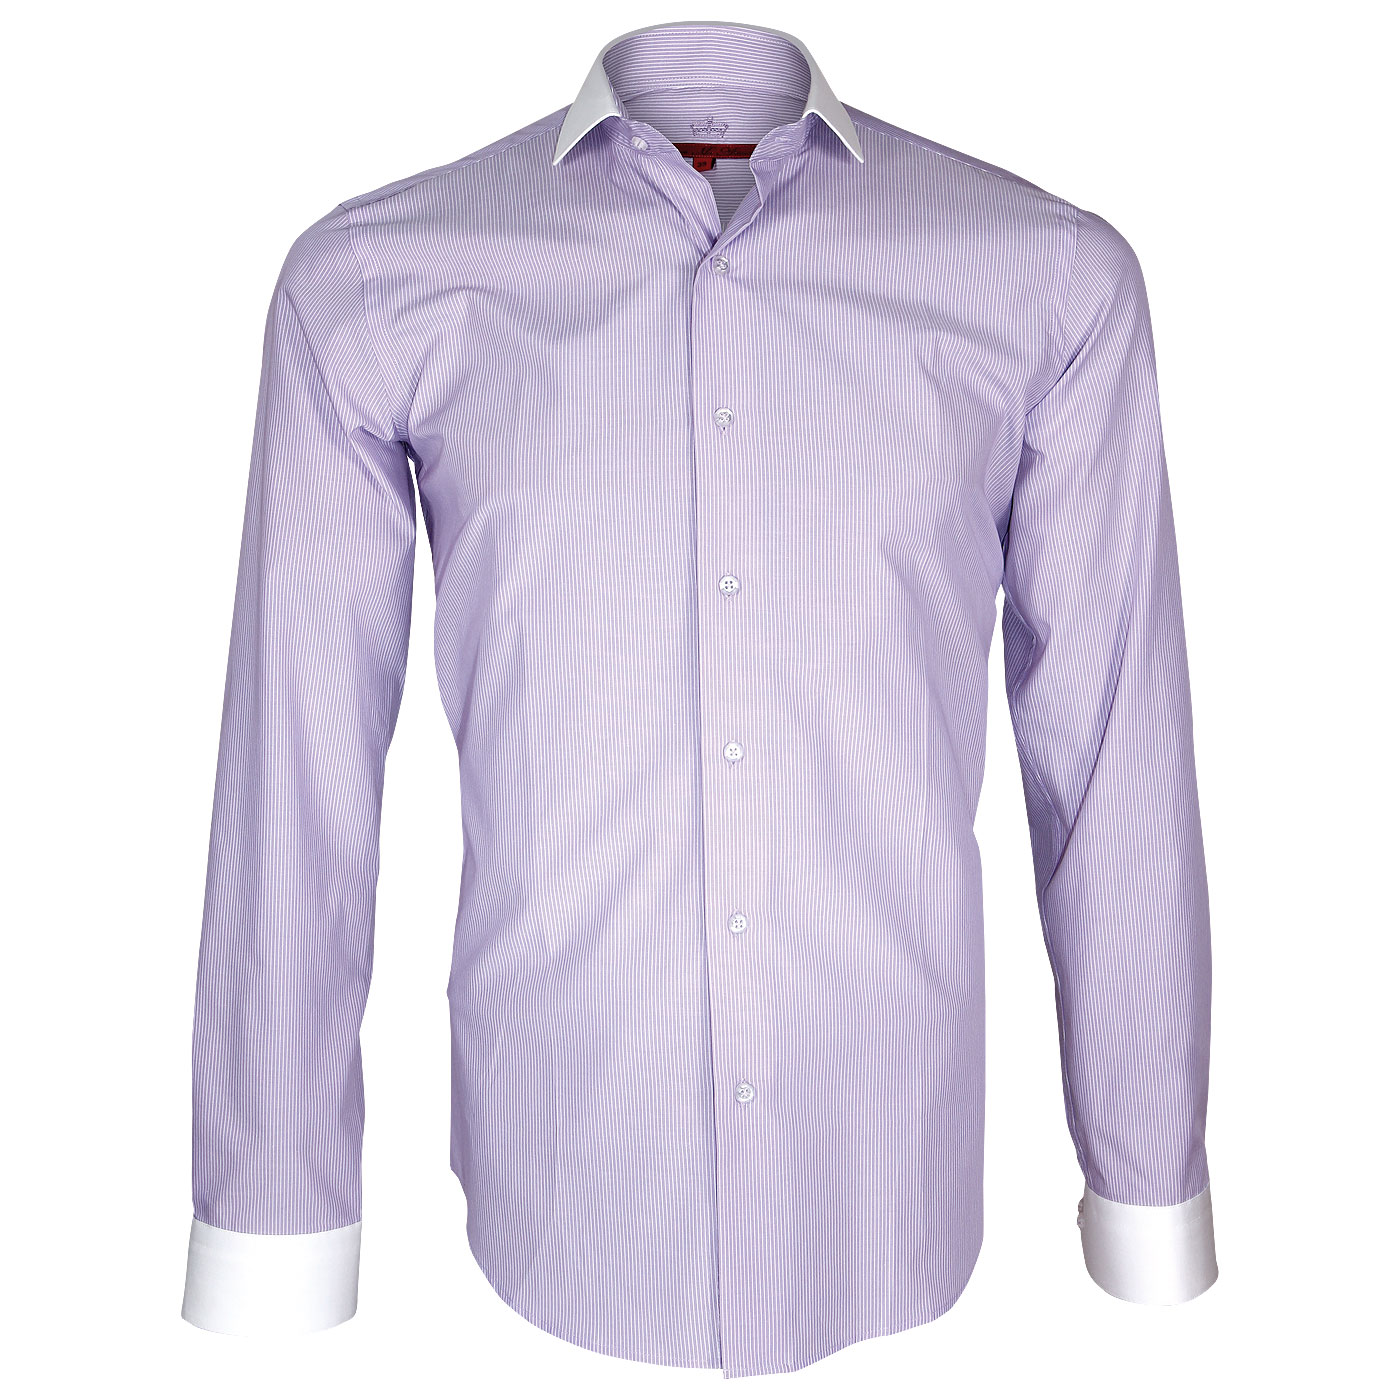 French Cuffs shirt Elegance and Refinement for man